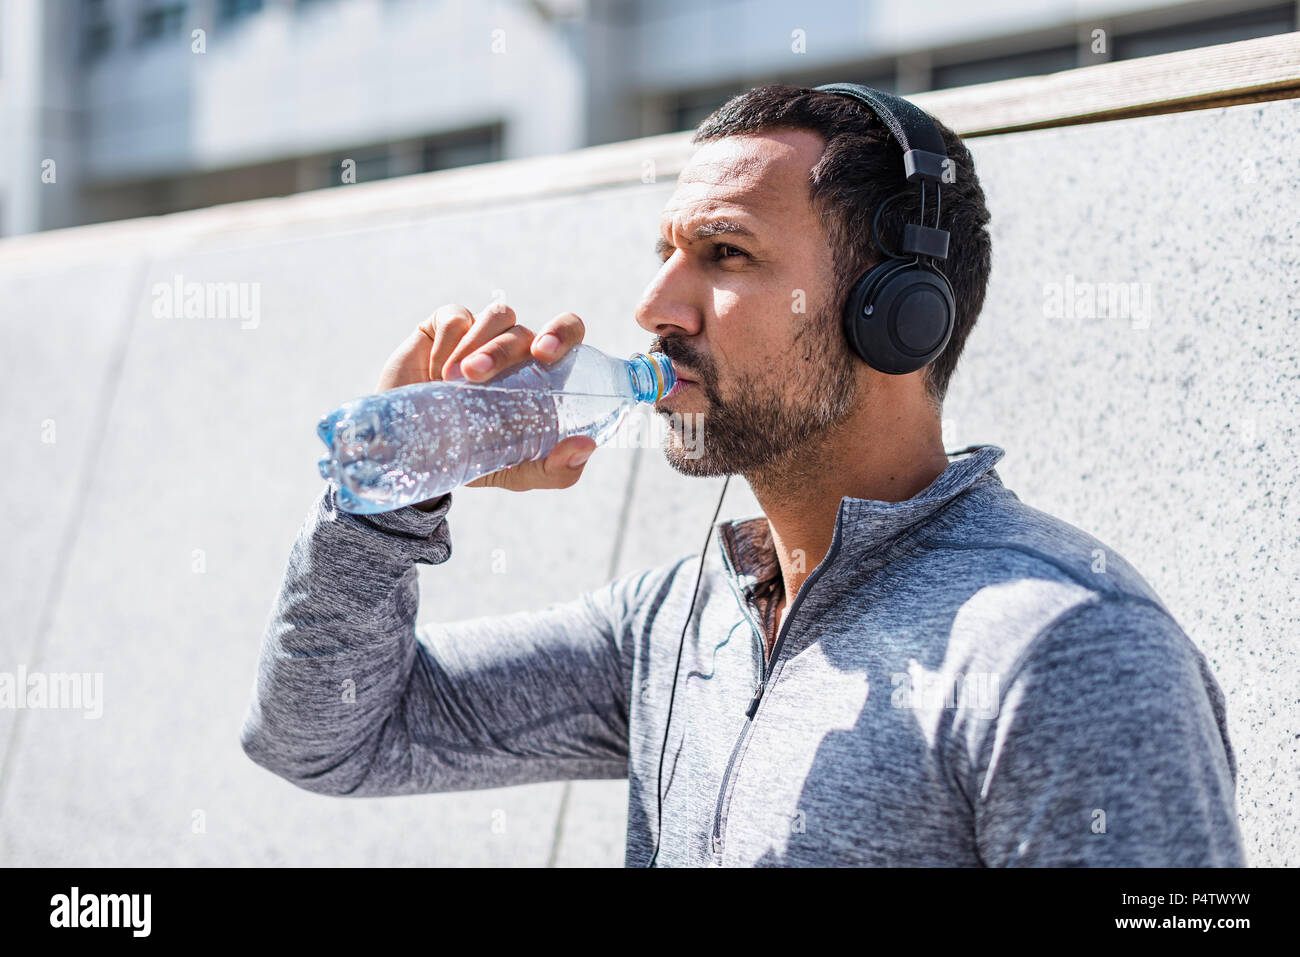 Man having a break from exercising wearing headphones and drinking from bottle - Stock Image